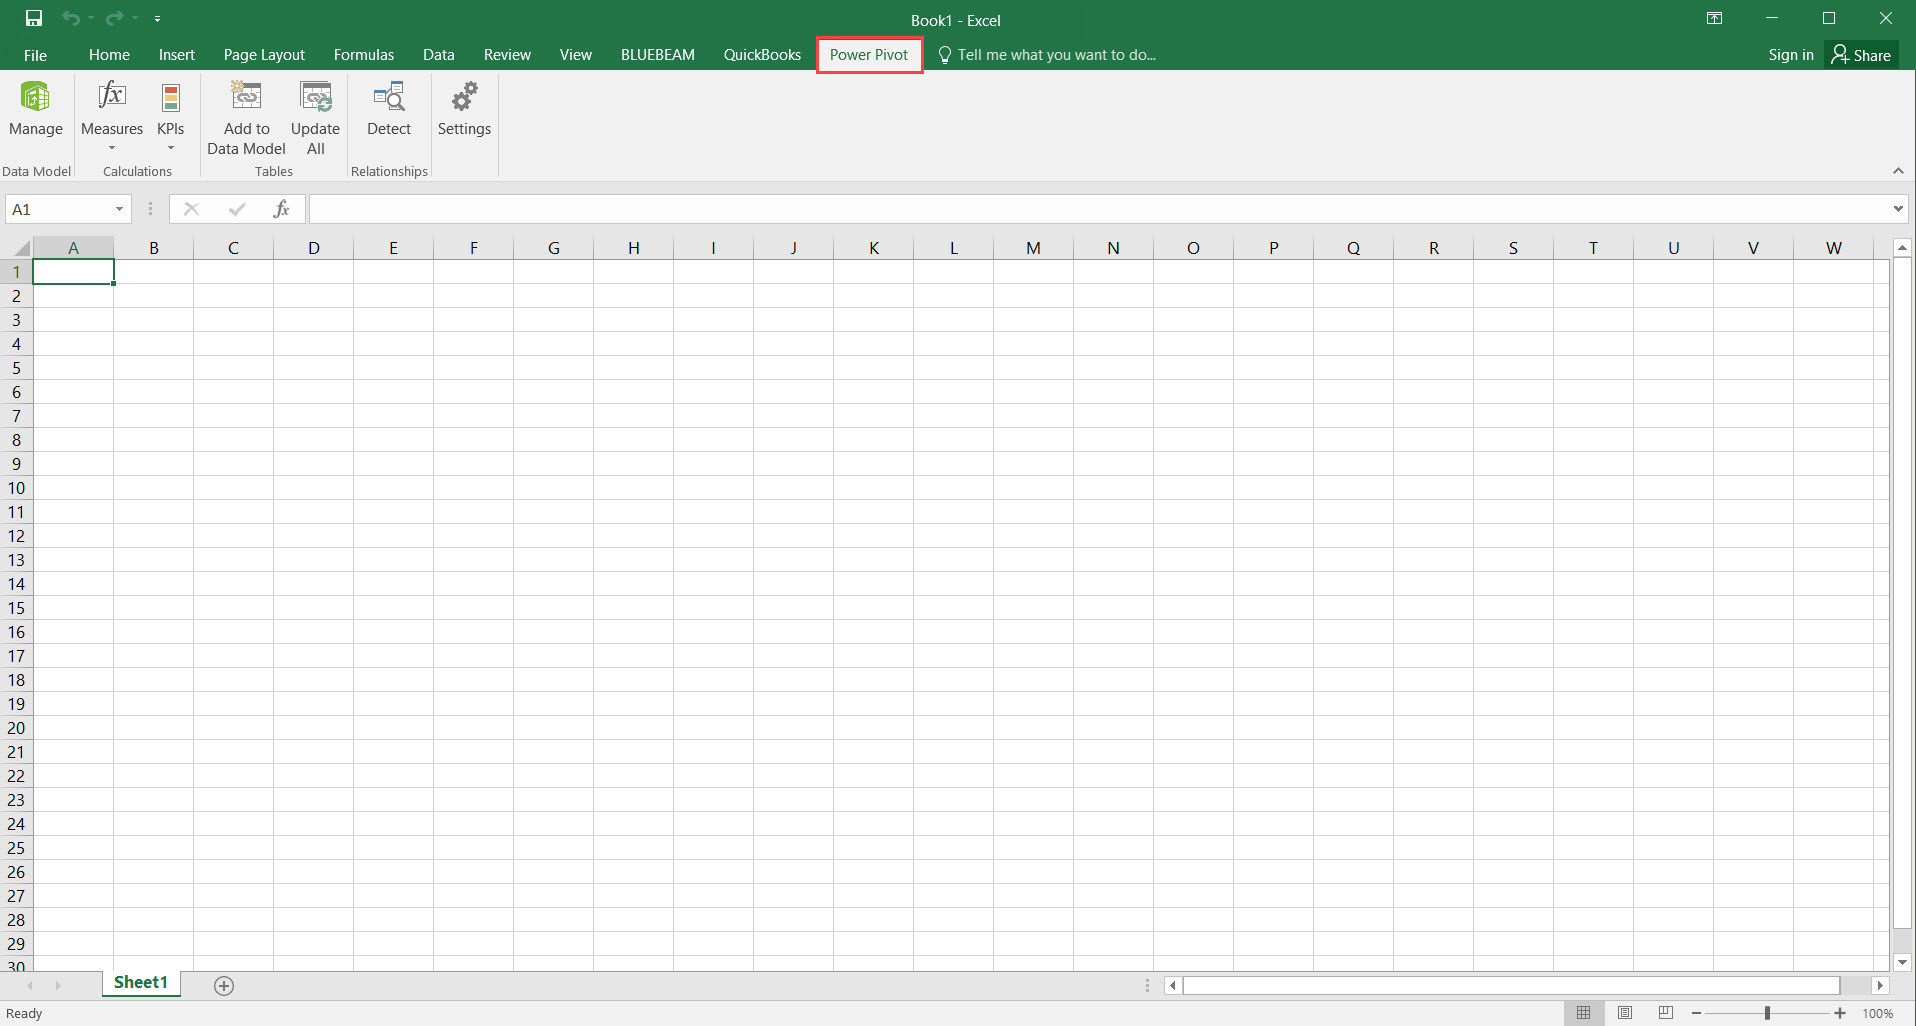 Excel Workbook; shows the location of the Power Pivot tab.